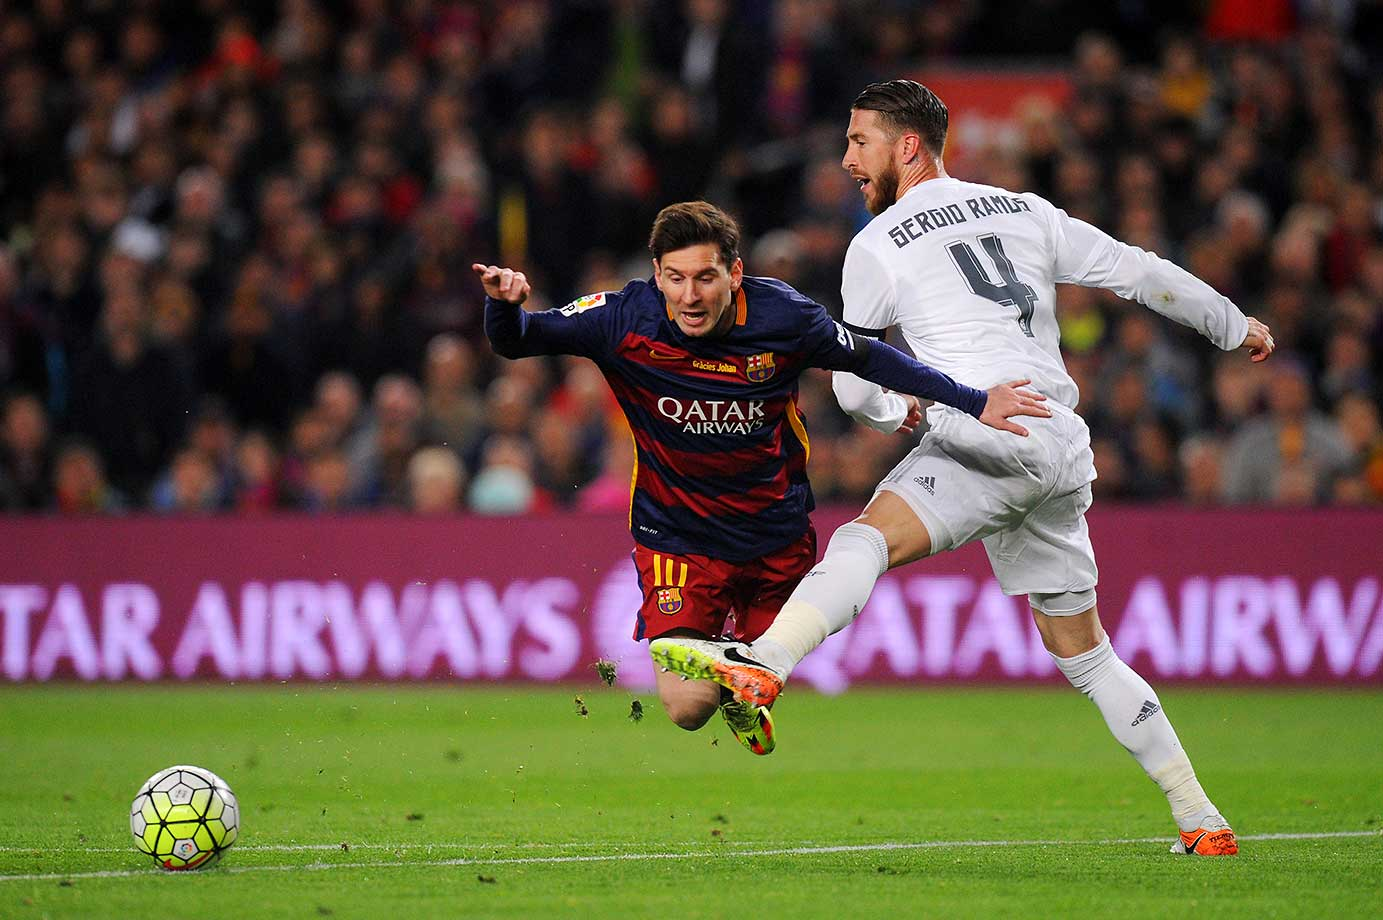 Sergio Ramos of Real Madrid battles for the ball with Lionel Messi of Barcelona during their La Liga match.